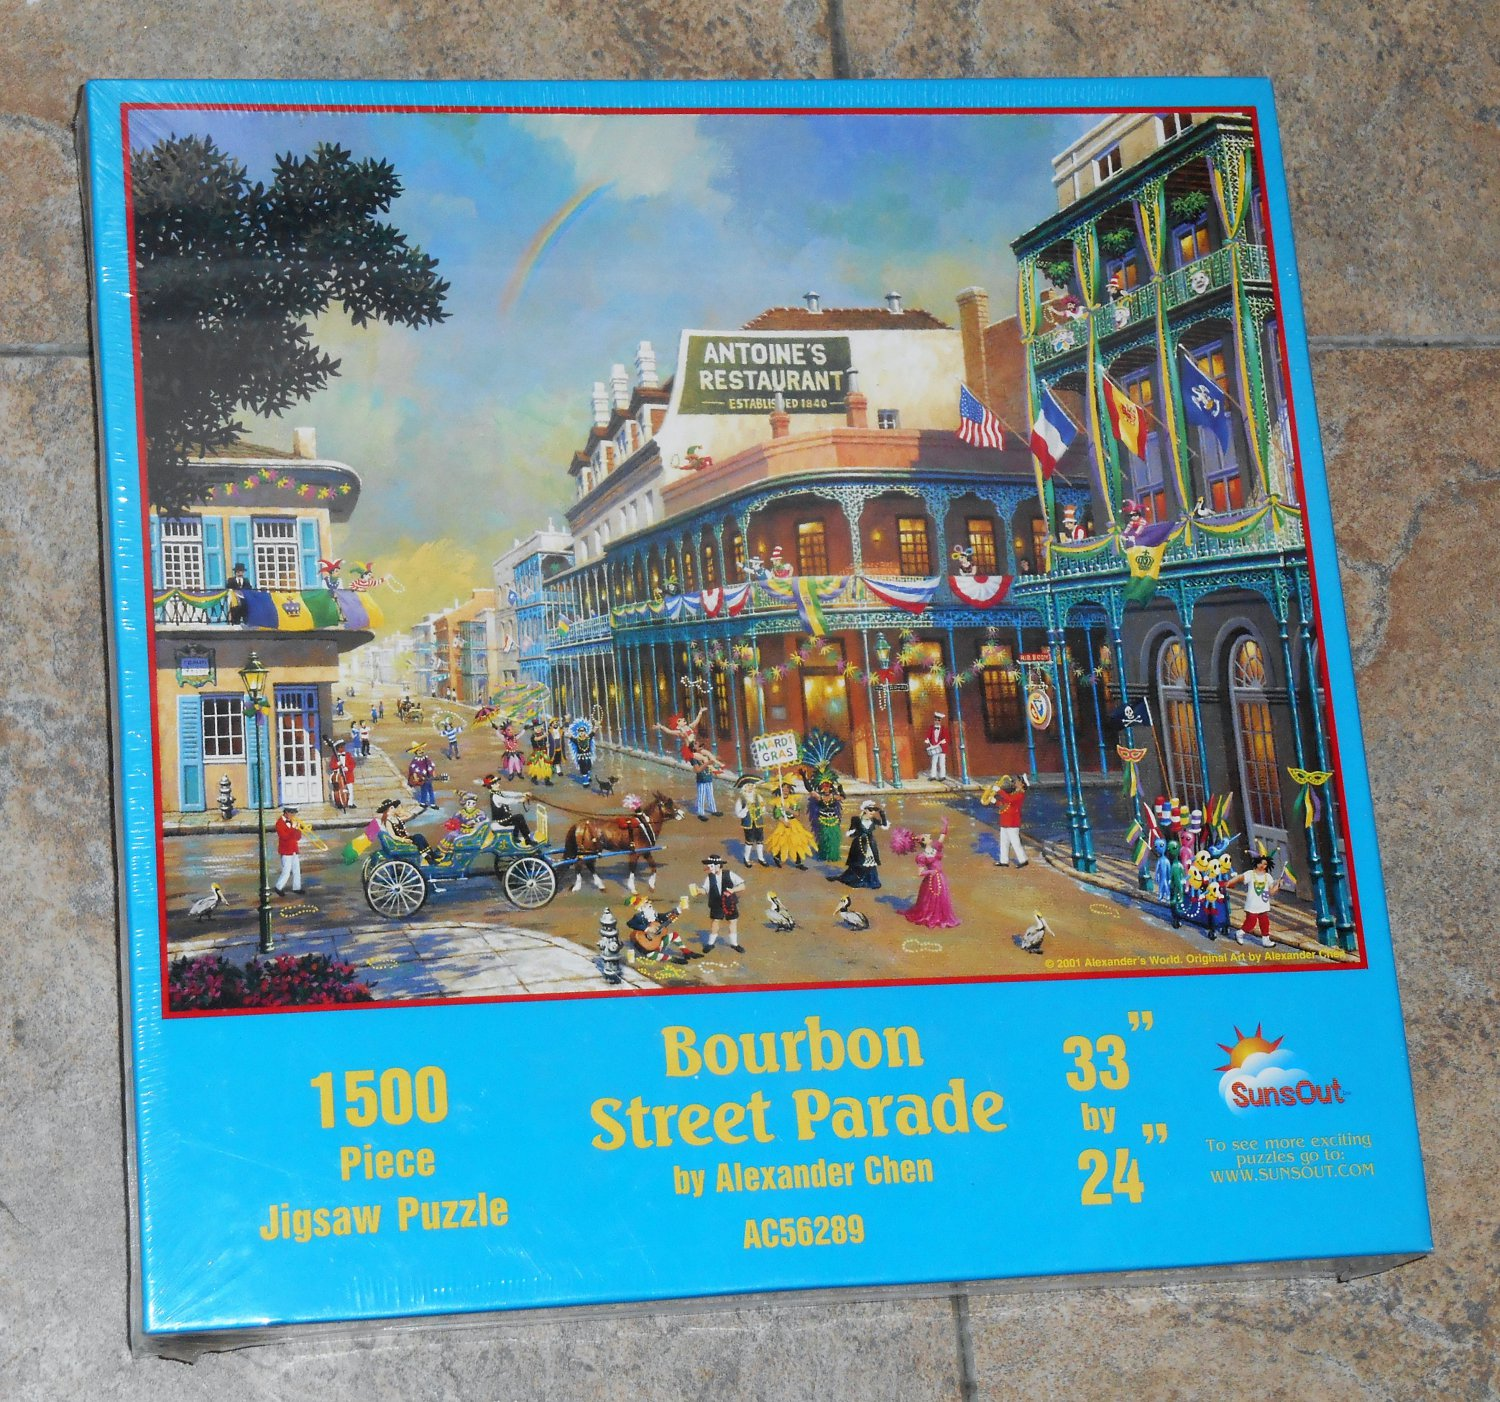 Bourbon Street Parade 1500 Piece Jigsaw Puzzle Mardi Gras SunsOut AC56289 SEALED